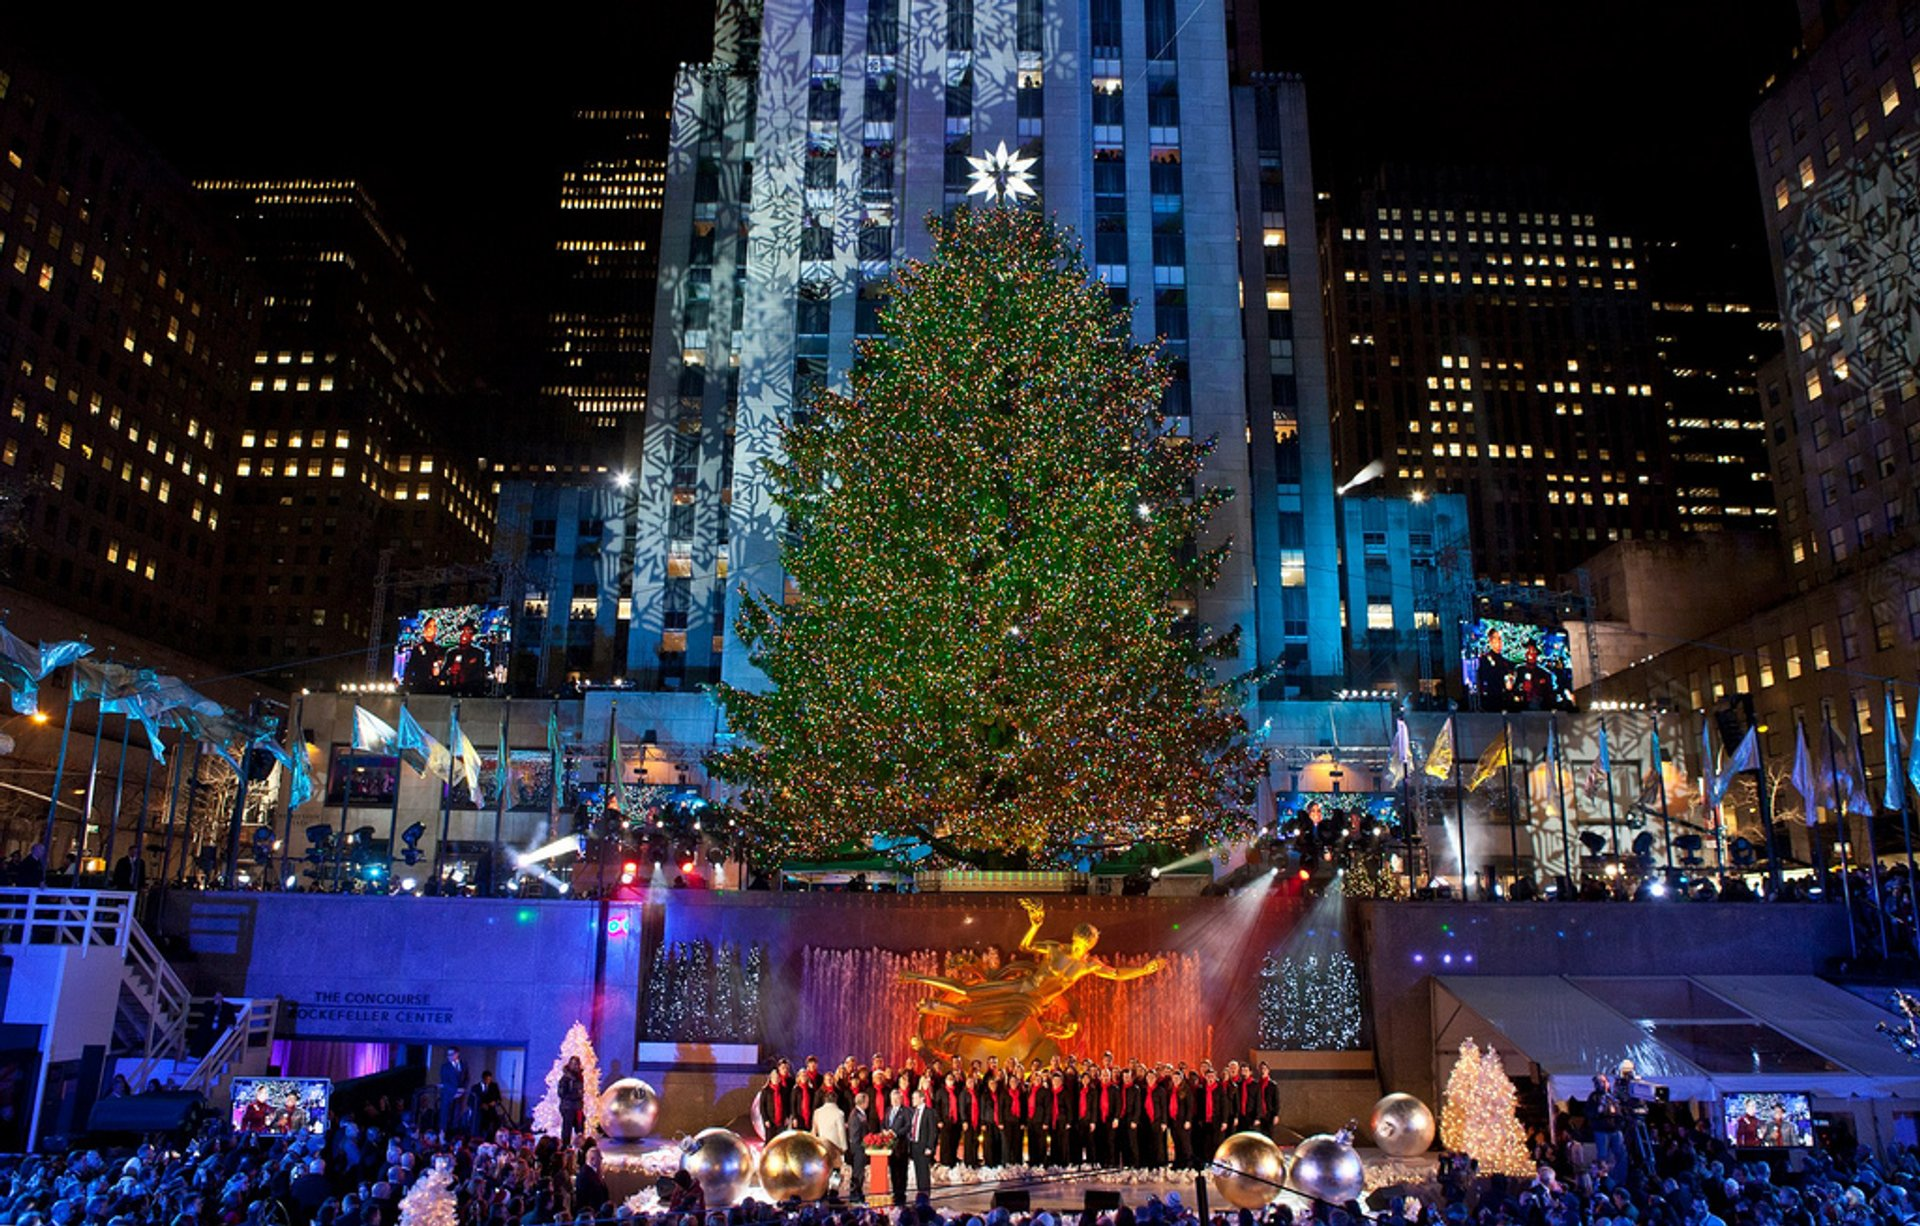 rockefeller center christmas tree 2020 in new york dates rockefeller center christmas tree 2020